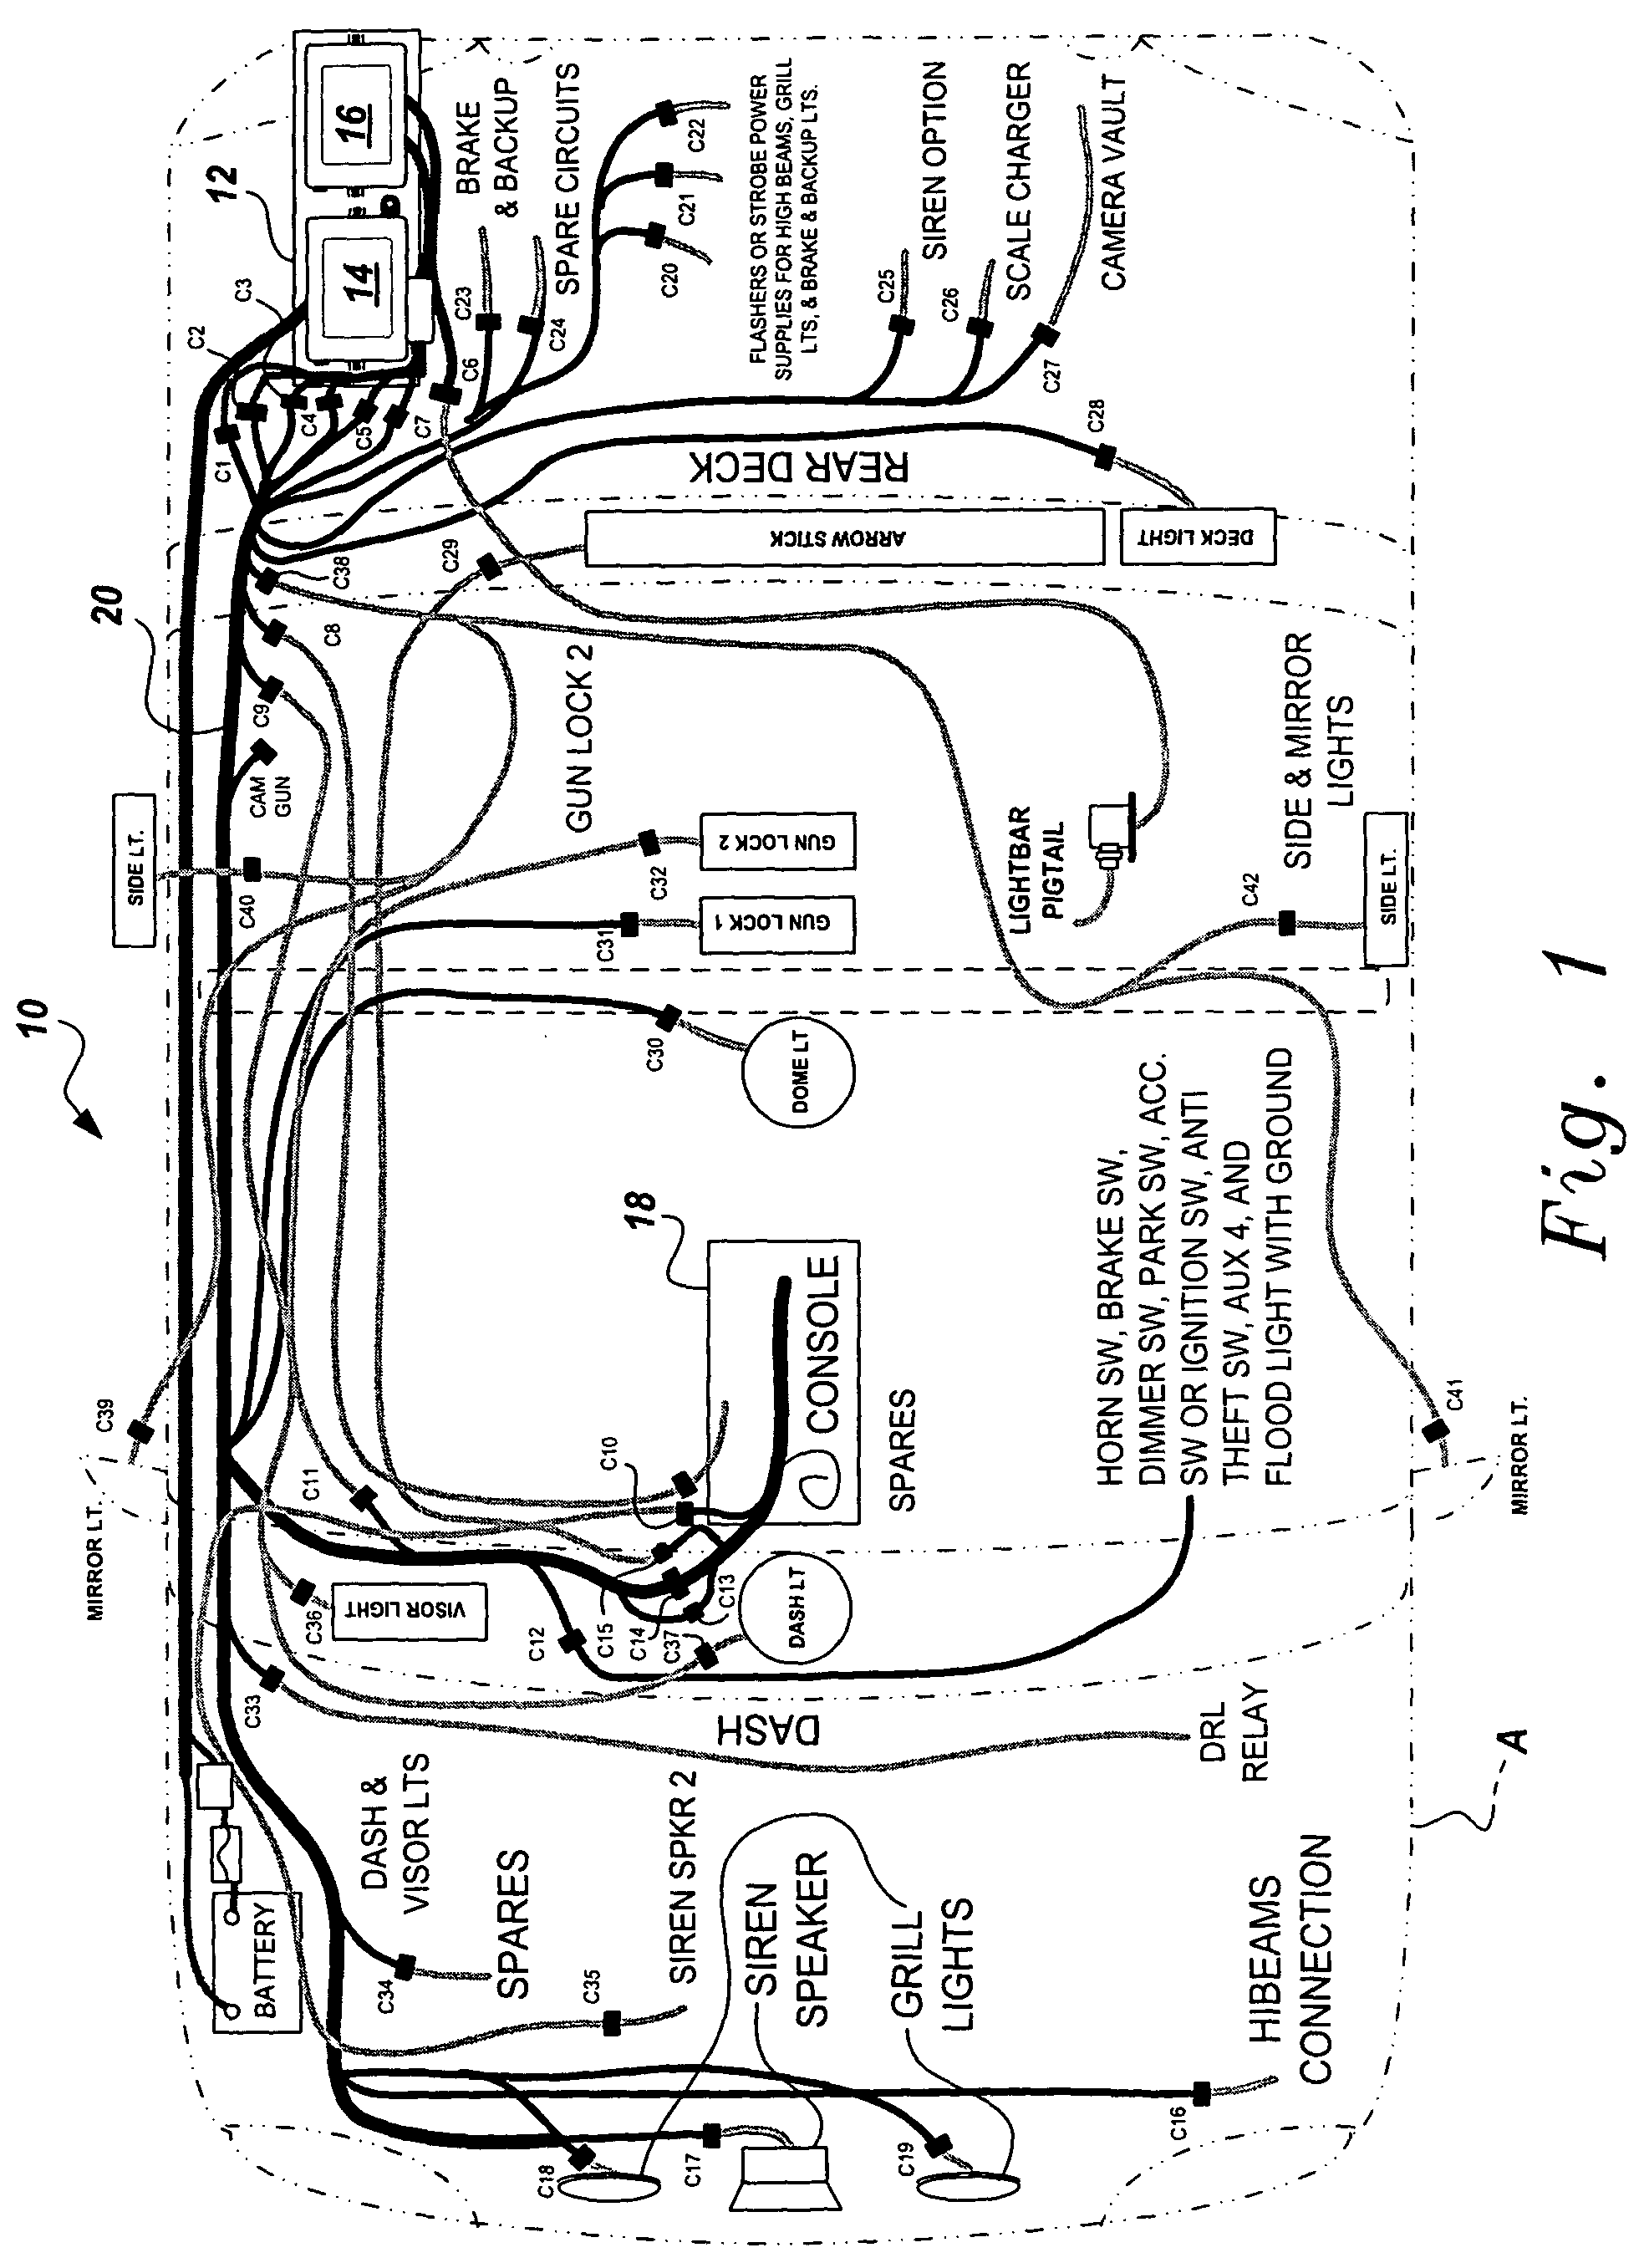 Cummins Fuel Shut Off Solenoid Wiring Diagram from i0.wp.com